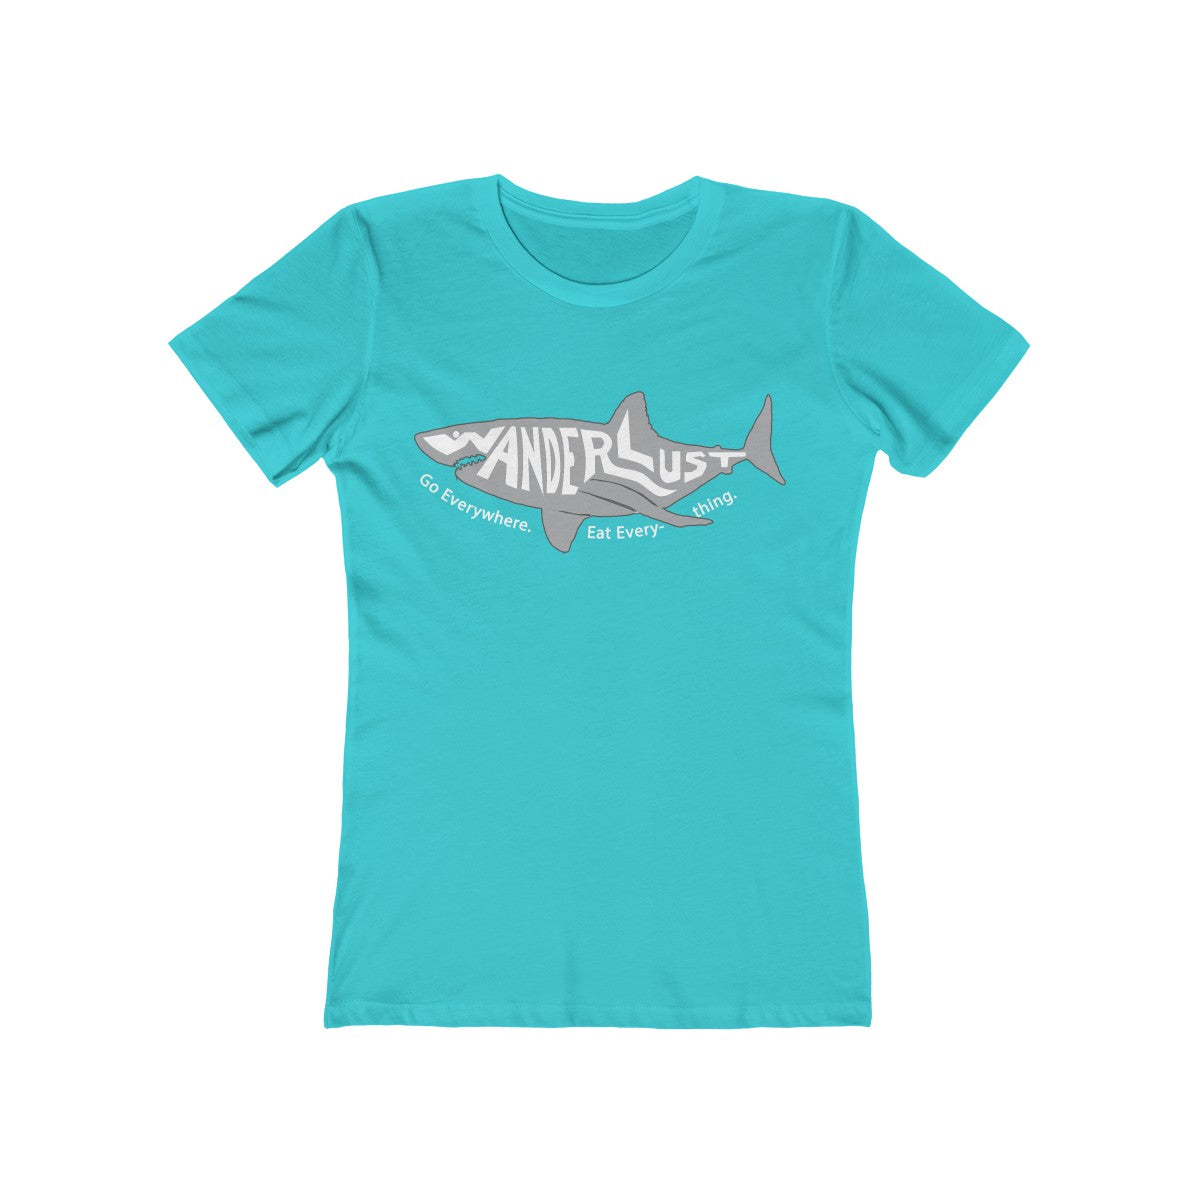 Great White Wanderlust - Women's T-Shirt